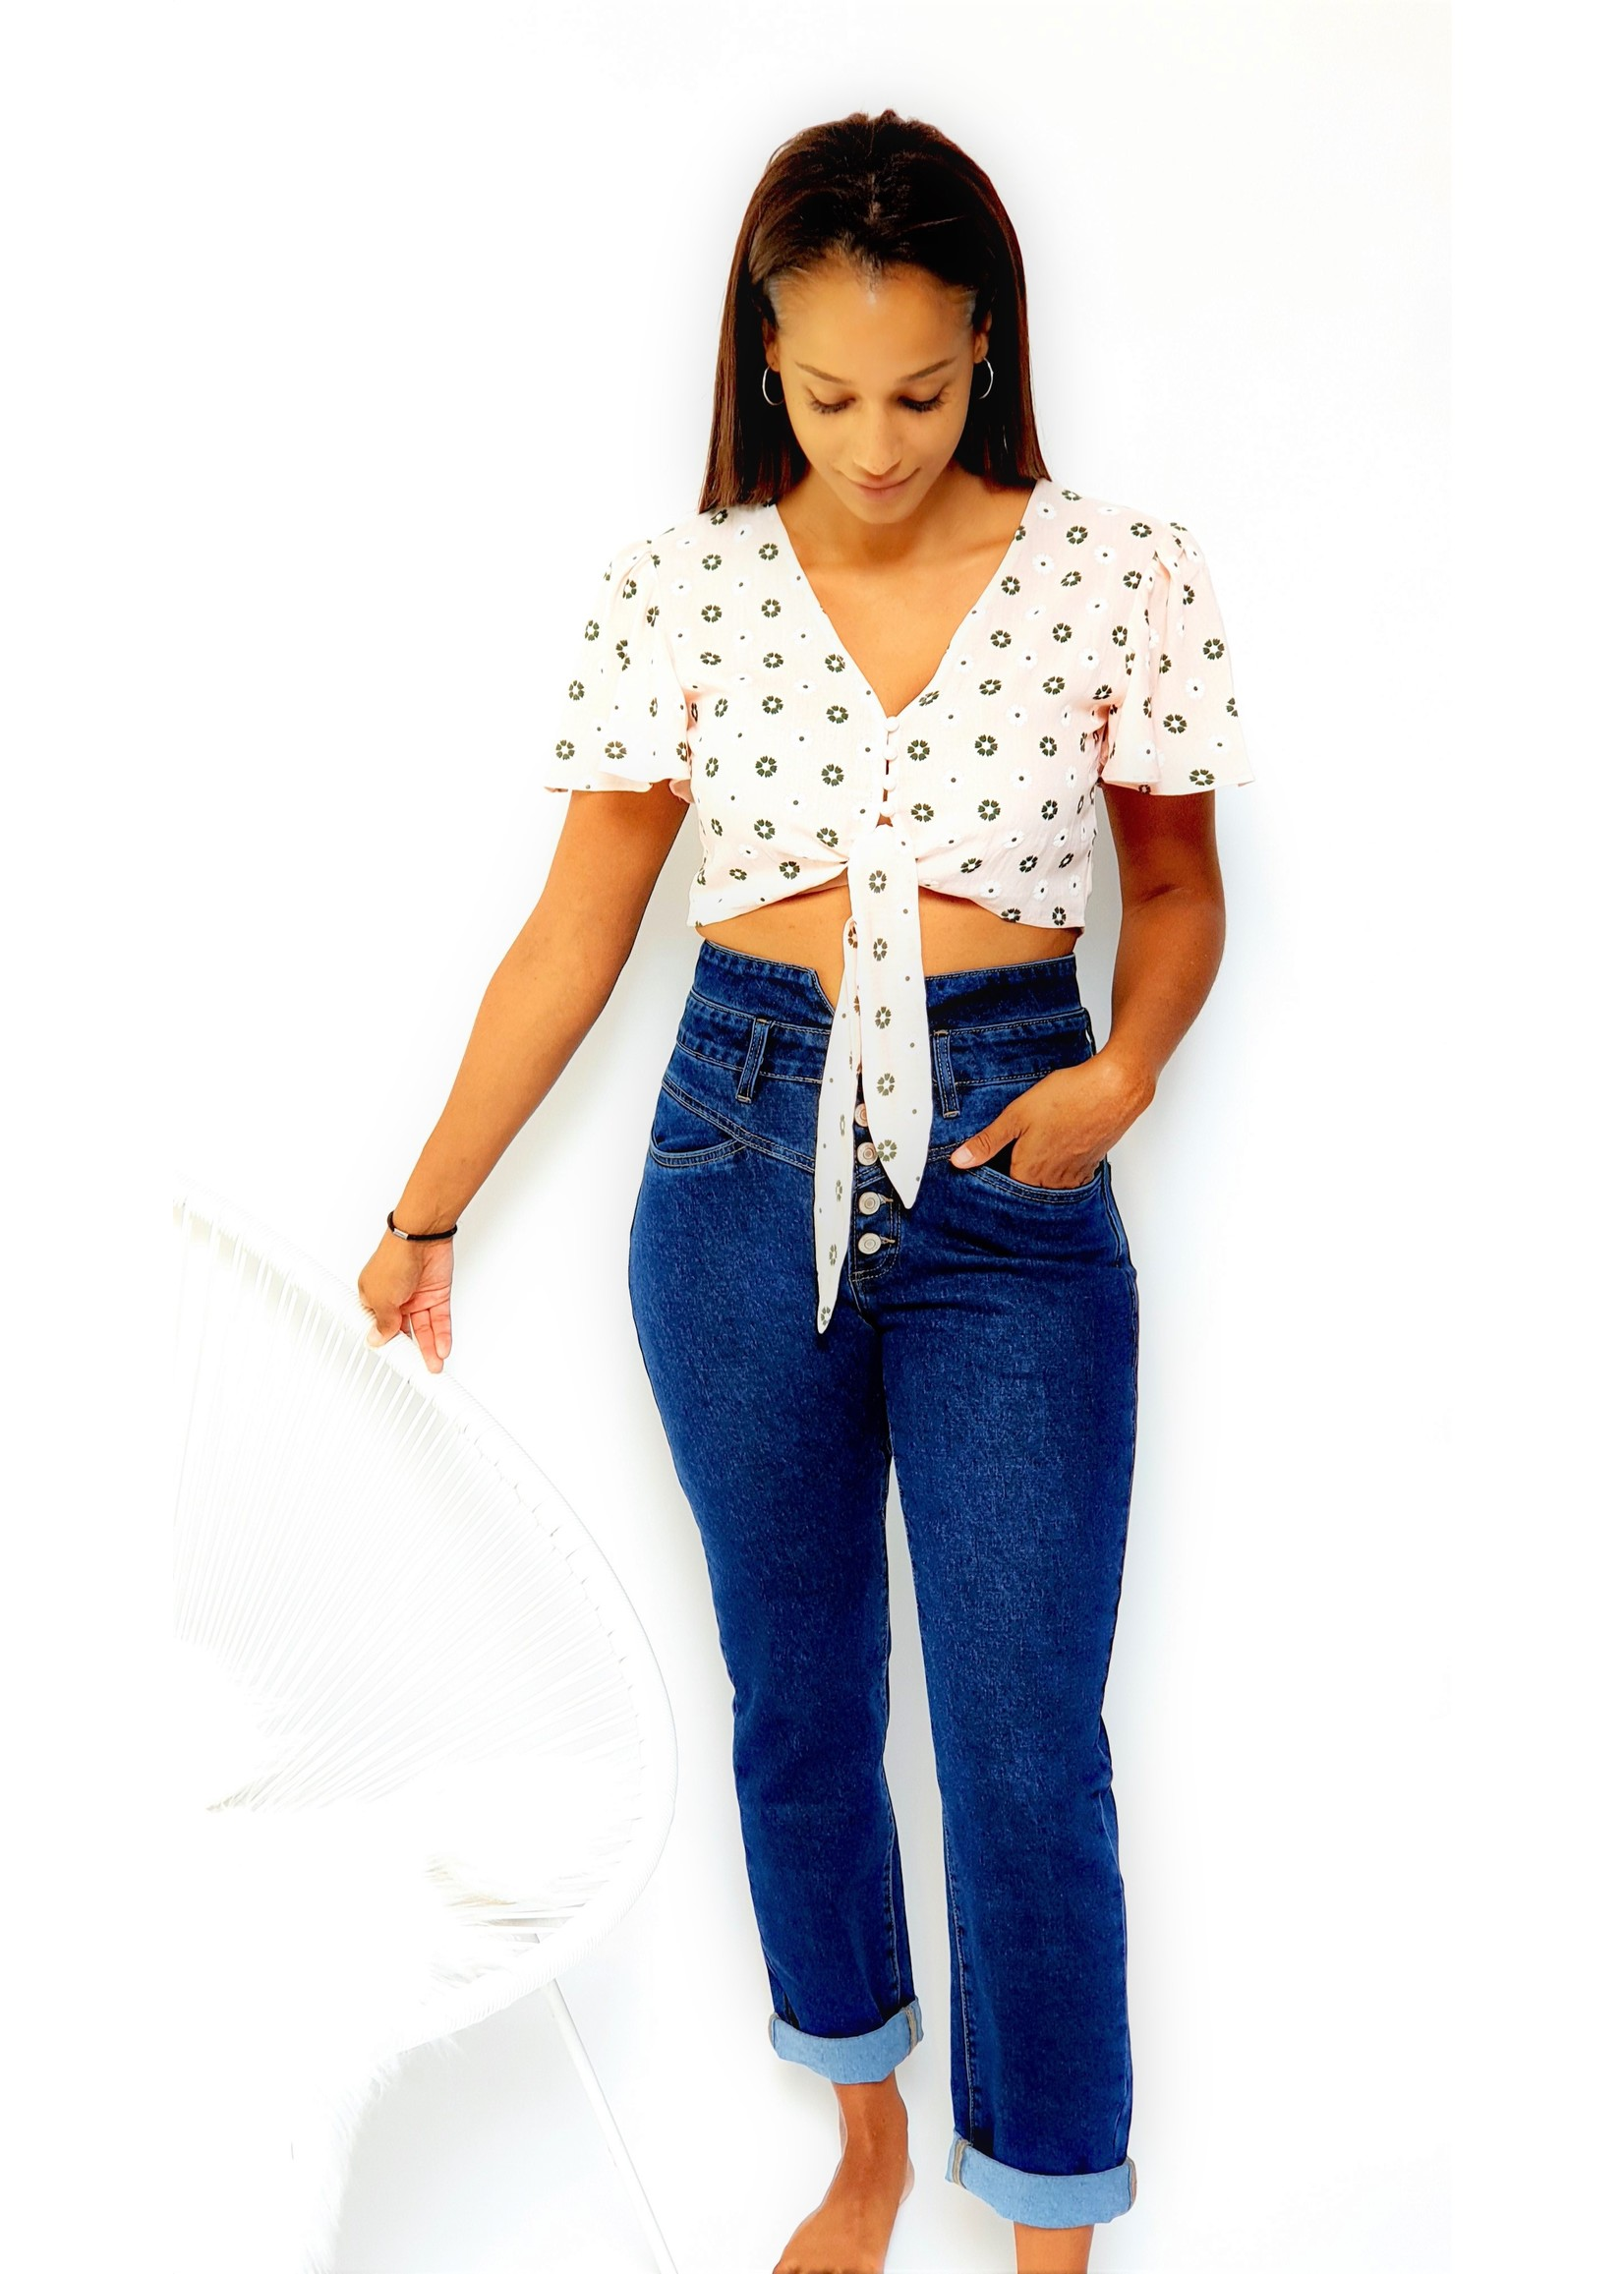 Romantic cropped top